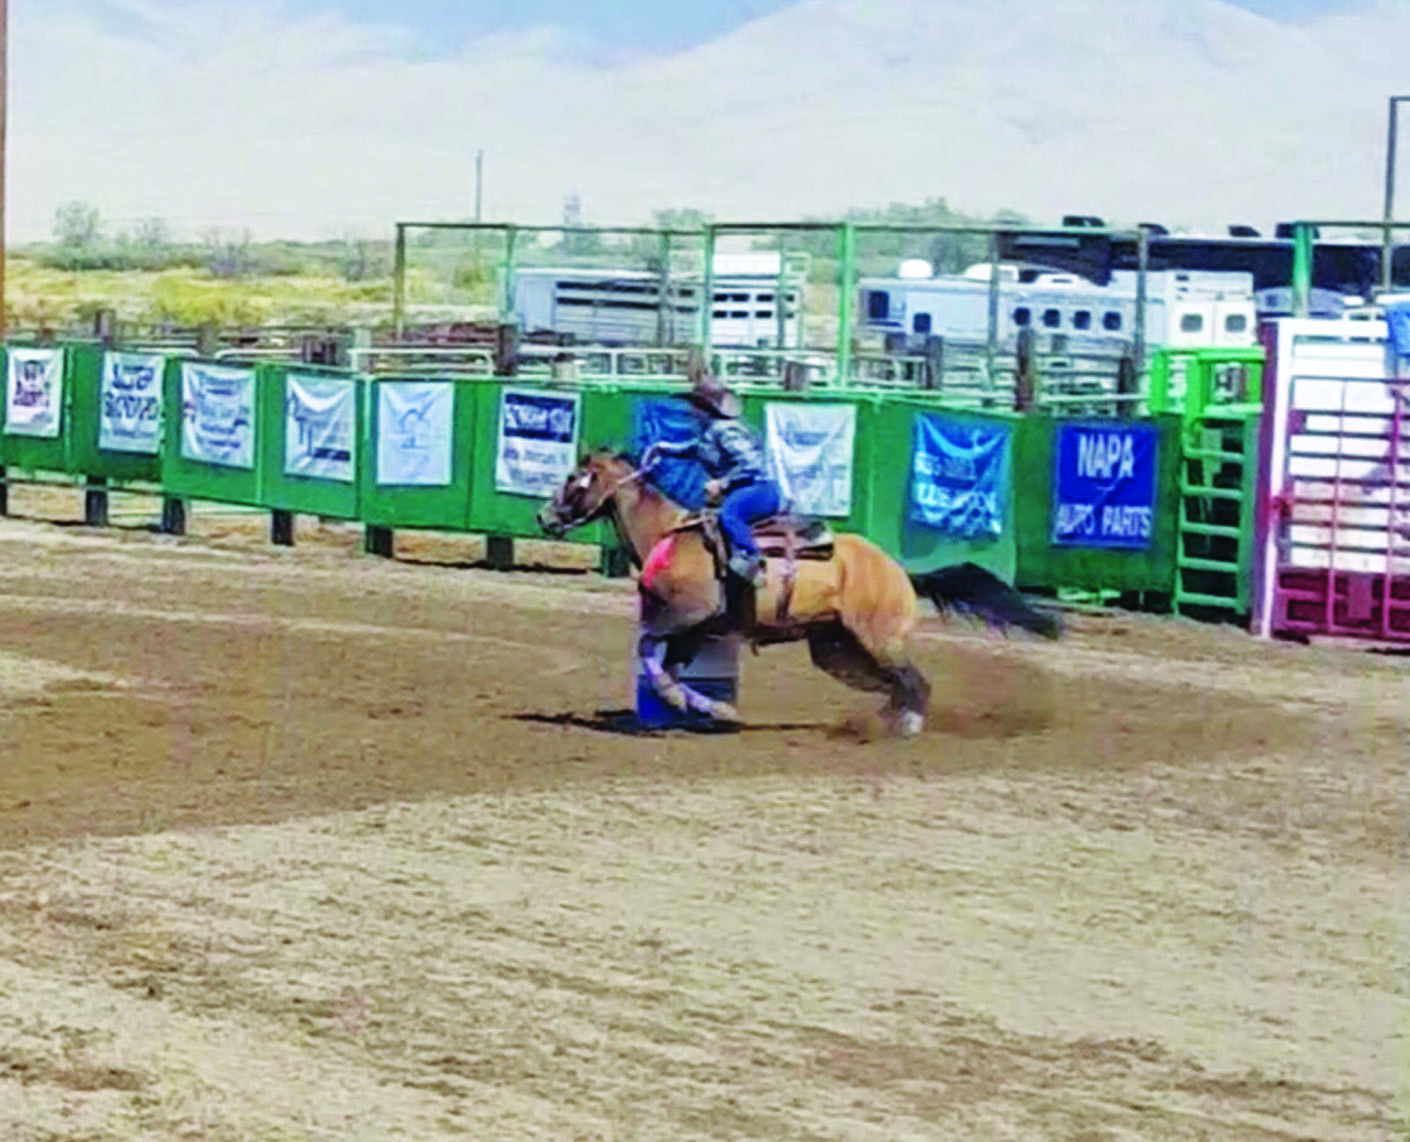 Rodeo Club hosting  rodeo this weekend